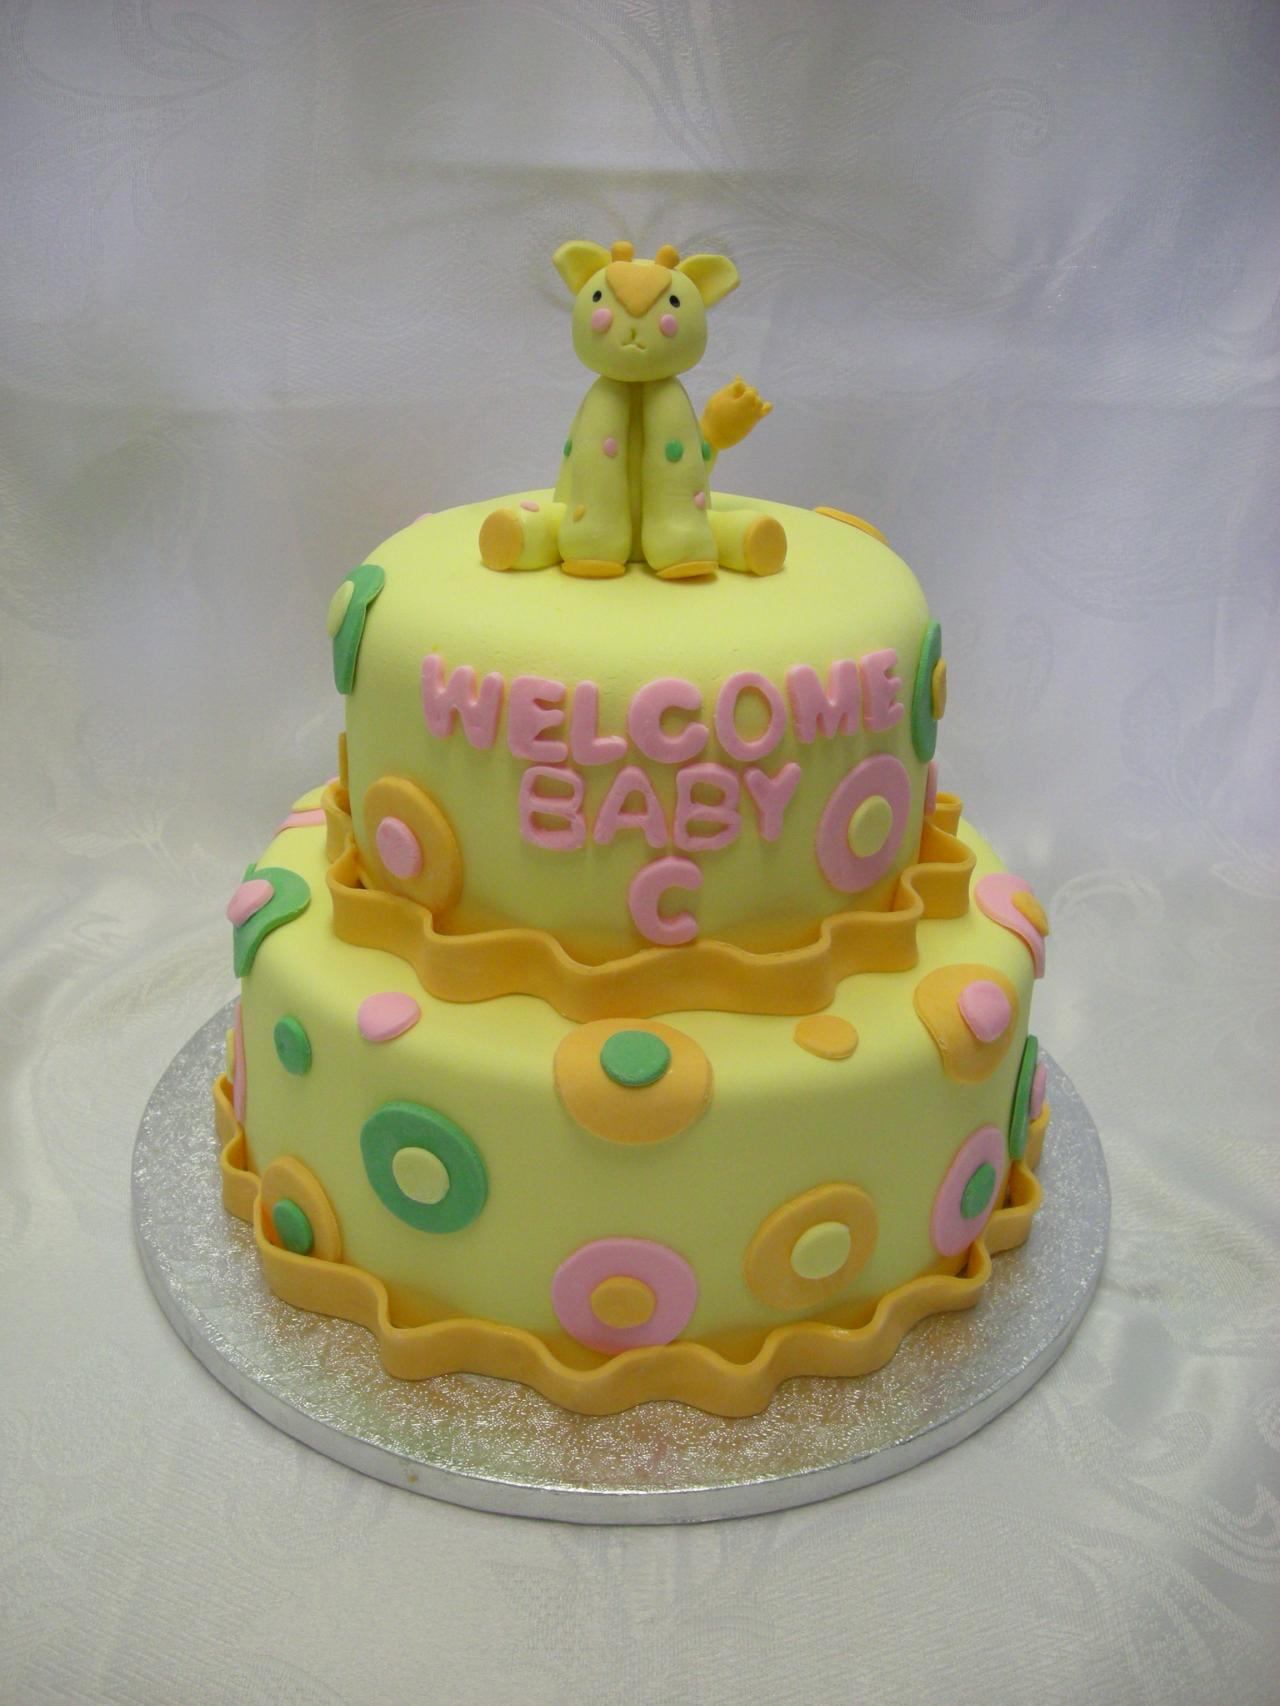 My Goodness Cakes - Baby Shower Cake Gallery